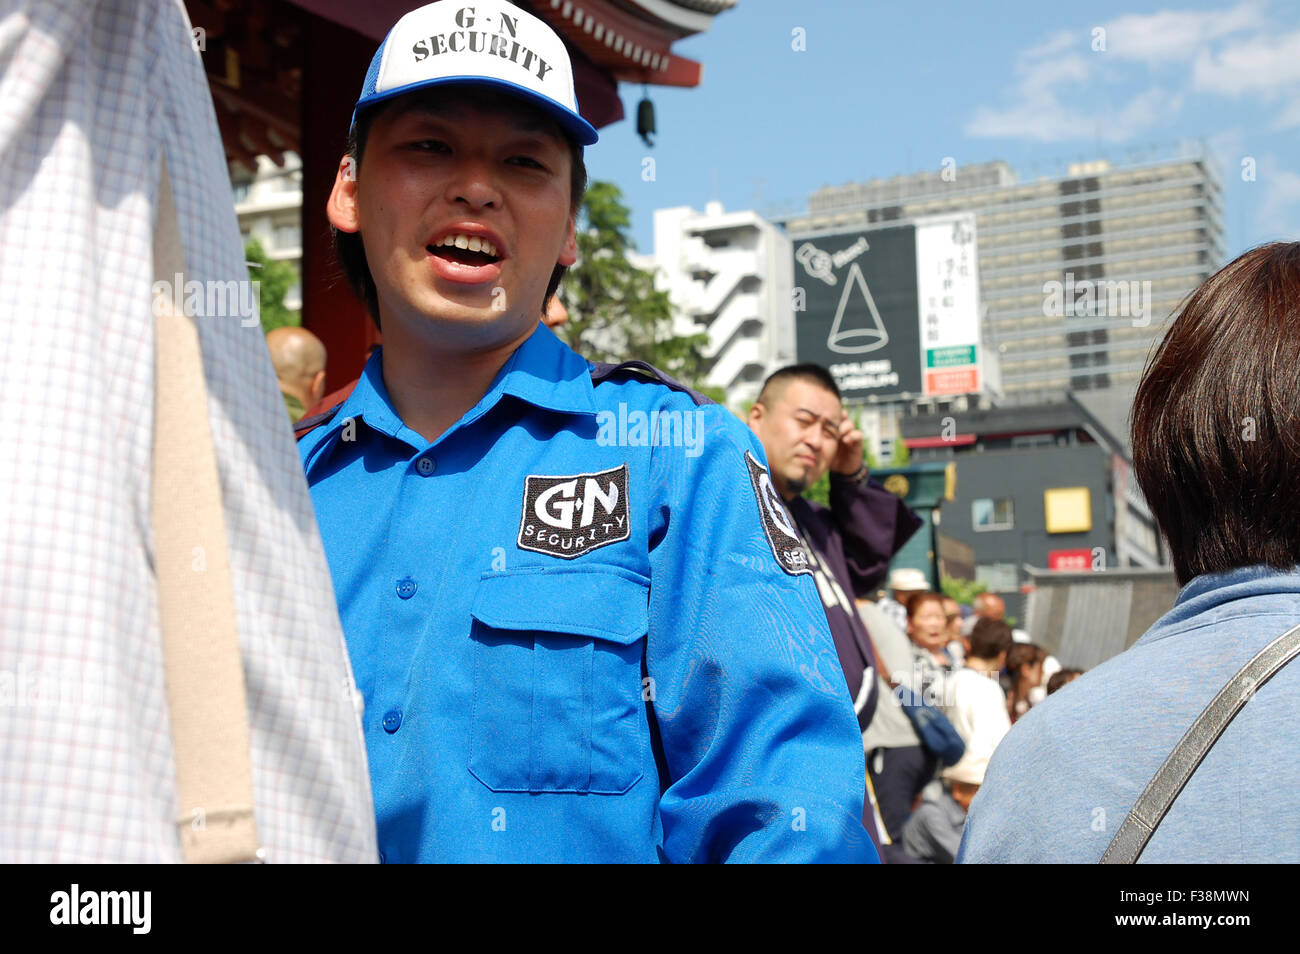 Security guard at the Sensoji Temple during the Sanja Matsuri Festival in Tokyo, Japan. - Stock Image